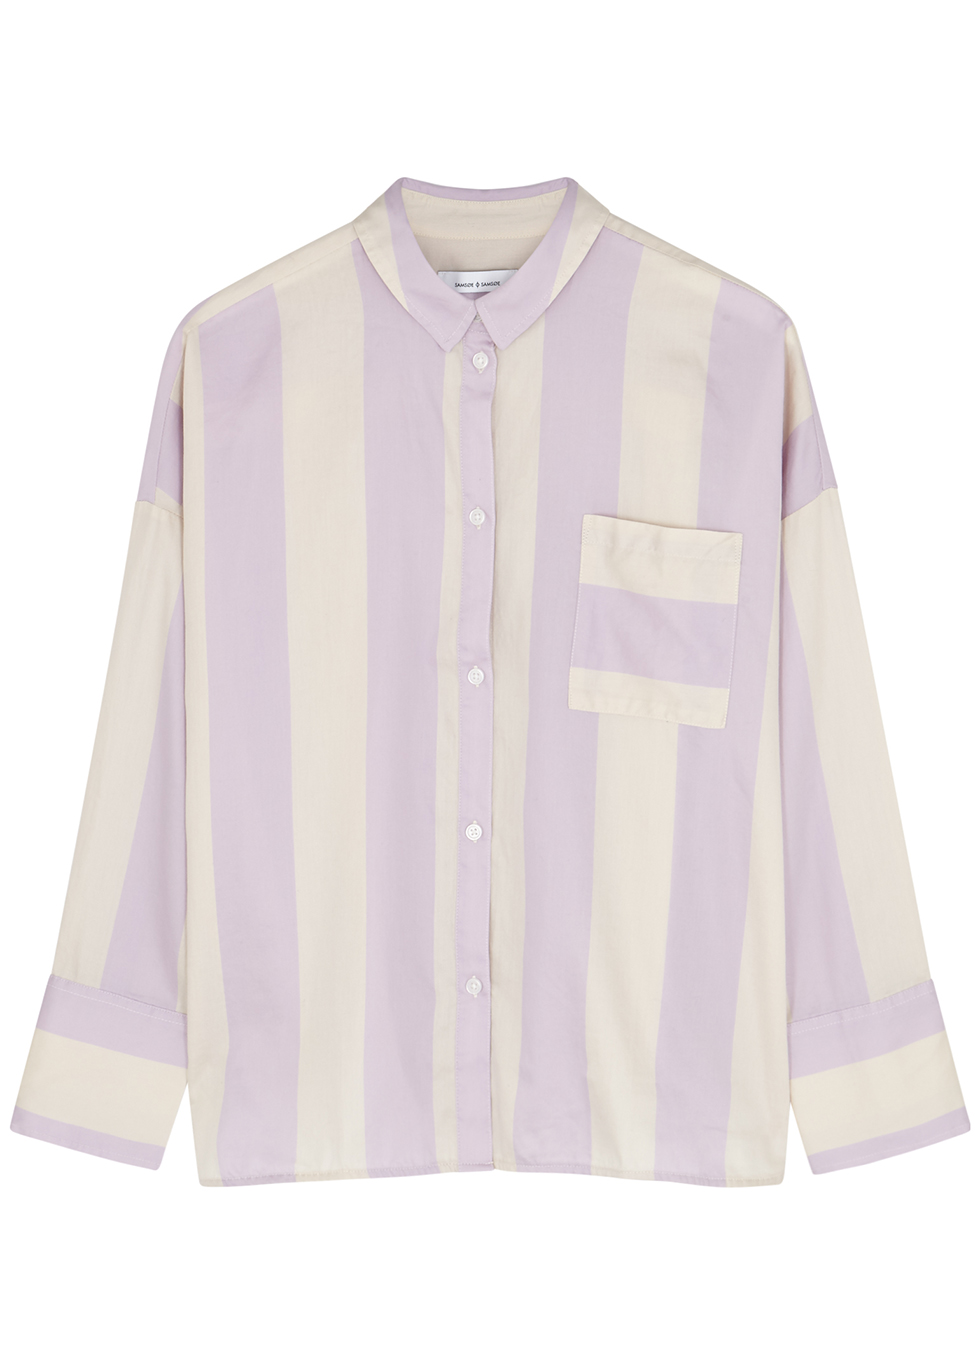 Oana striped cotton shirt - Samsøe & Samsøe